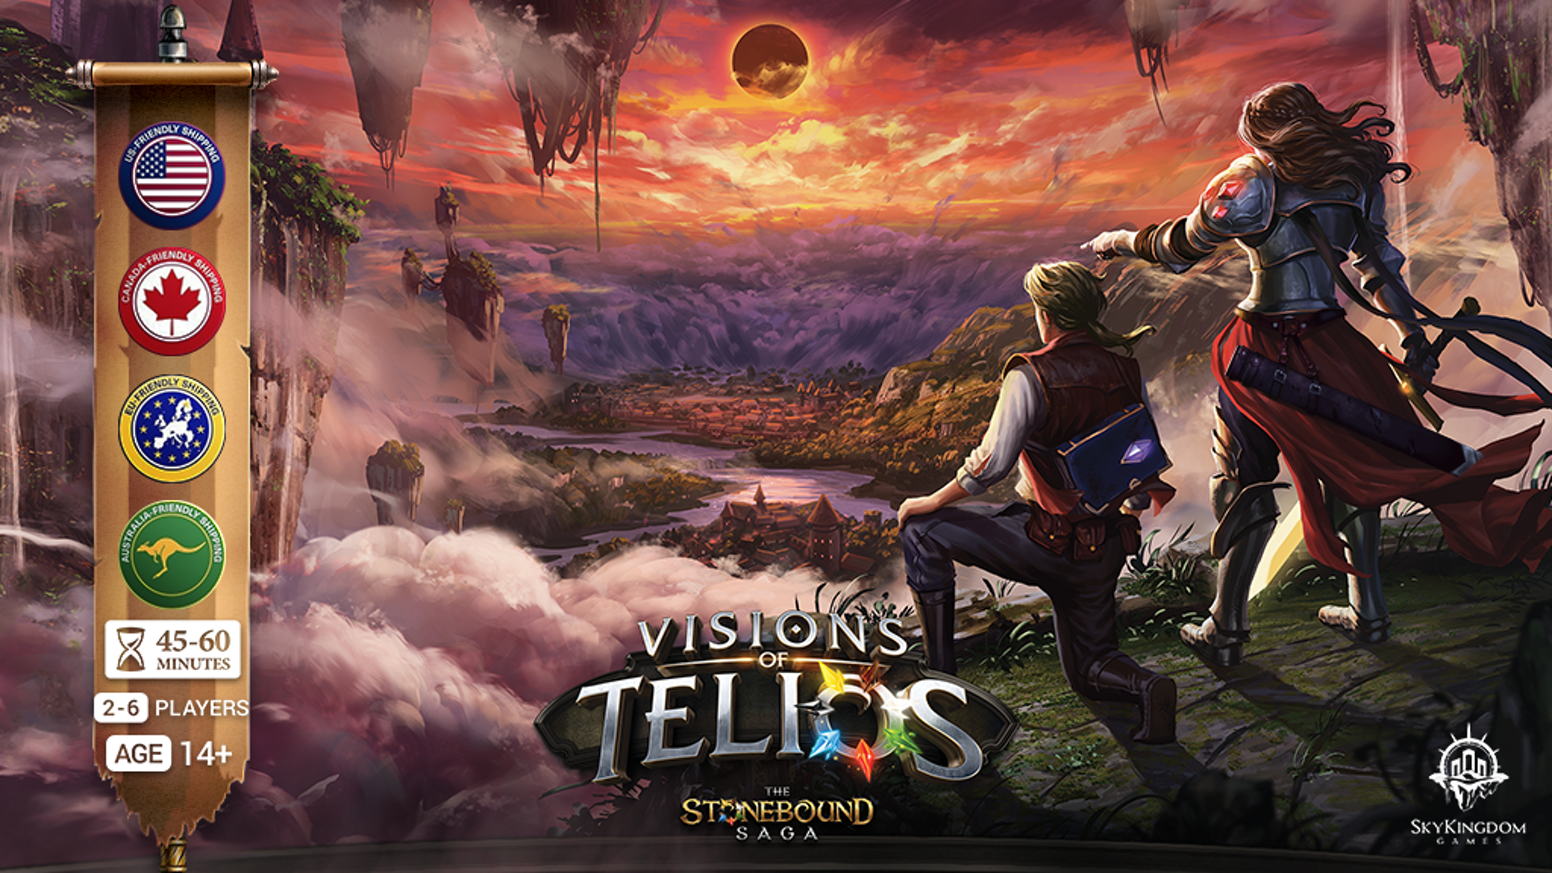 A strategic skirmish boardgame with resource management, and tactical positioning in an incredibly beautiful world named Telios.